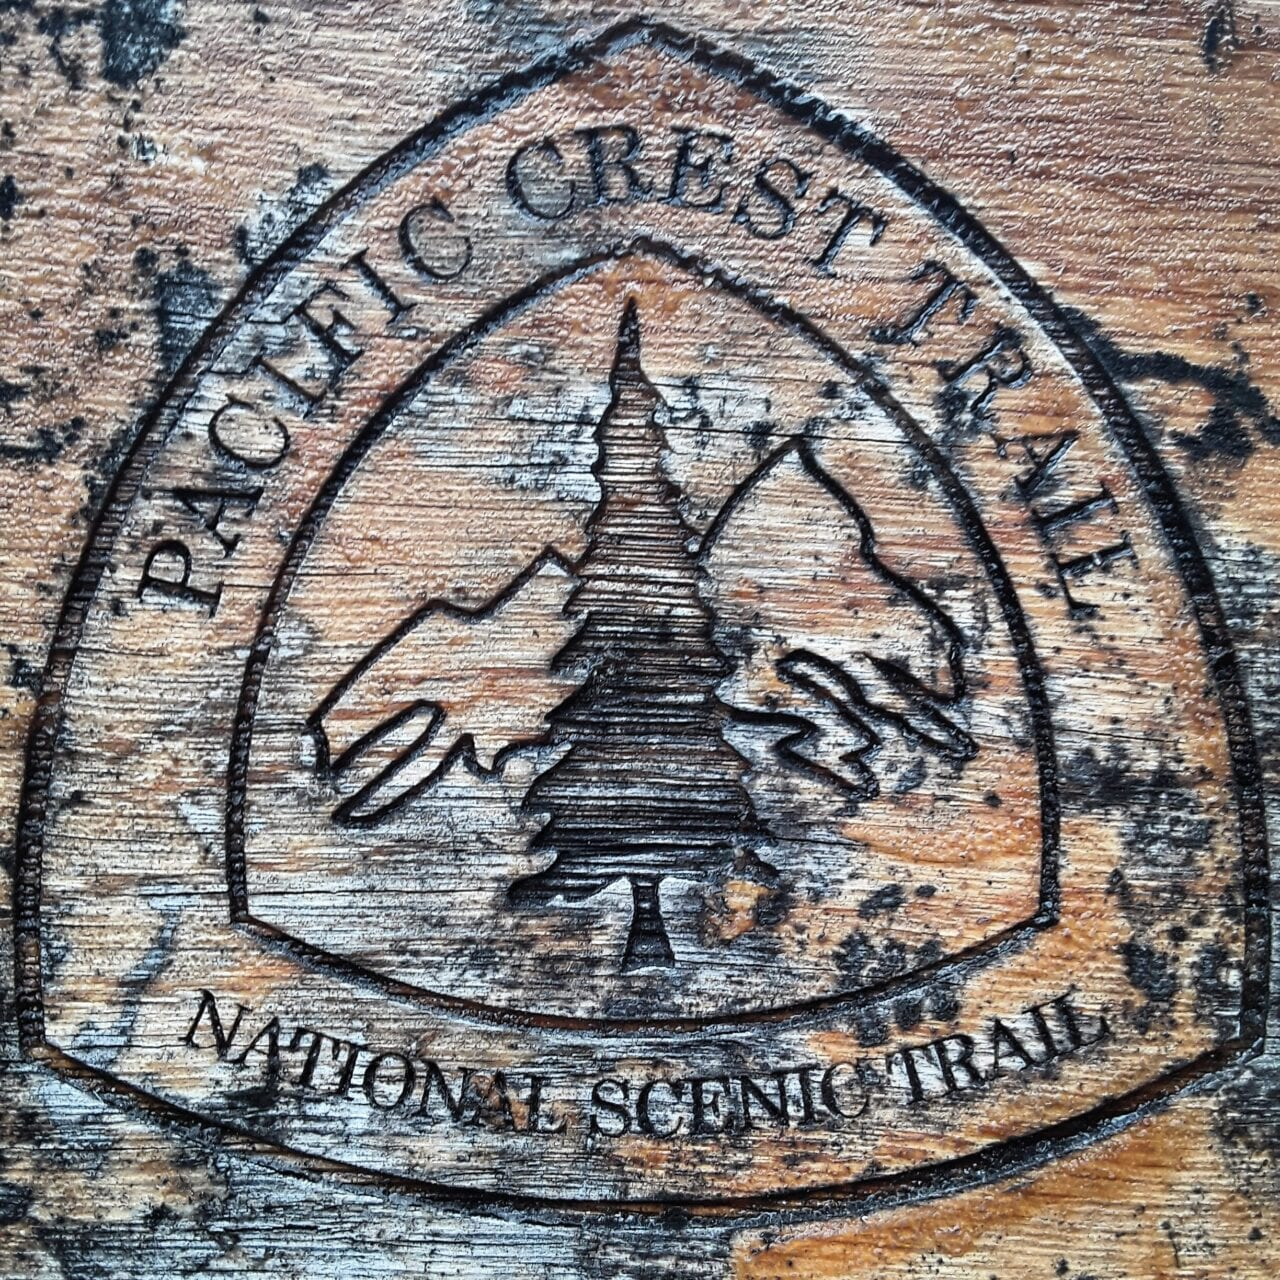 A Pacific Crest Trail sign on a tree.